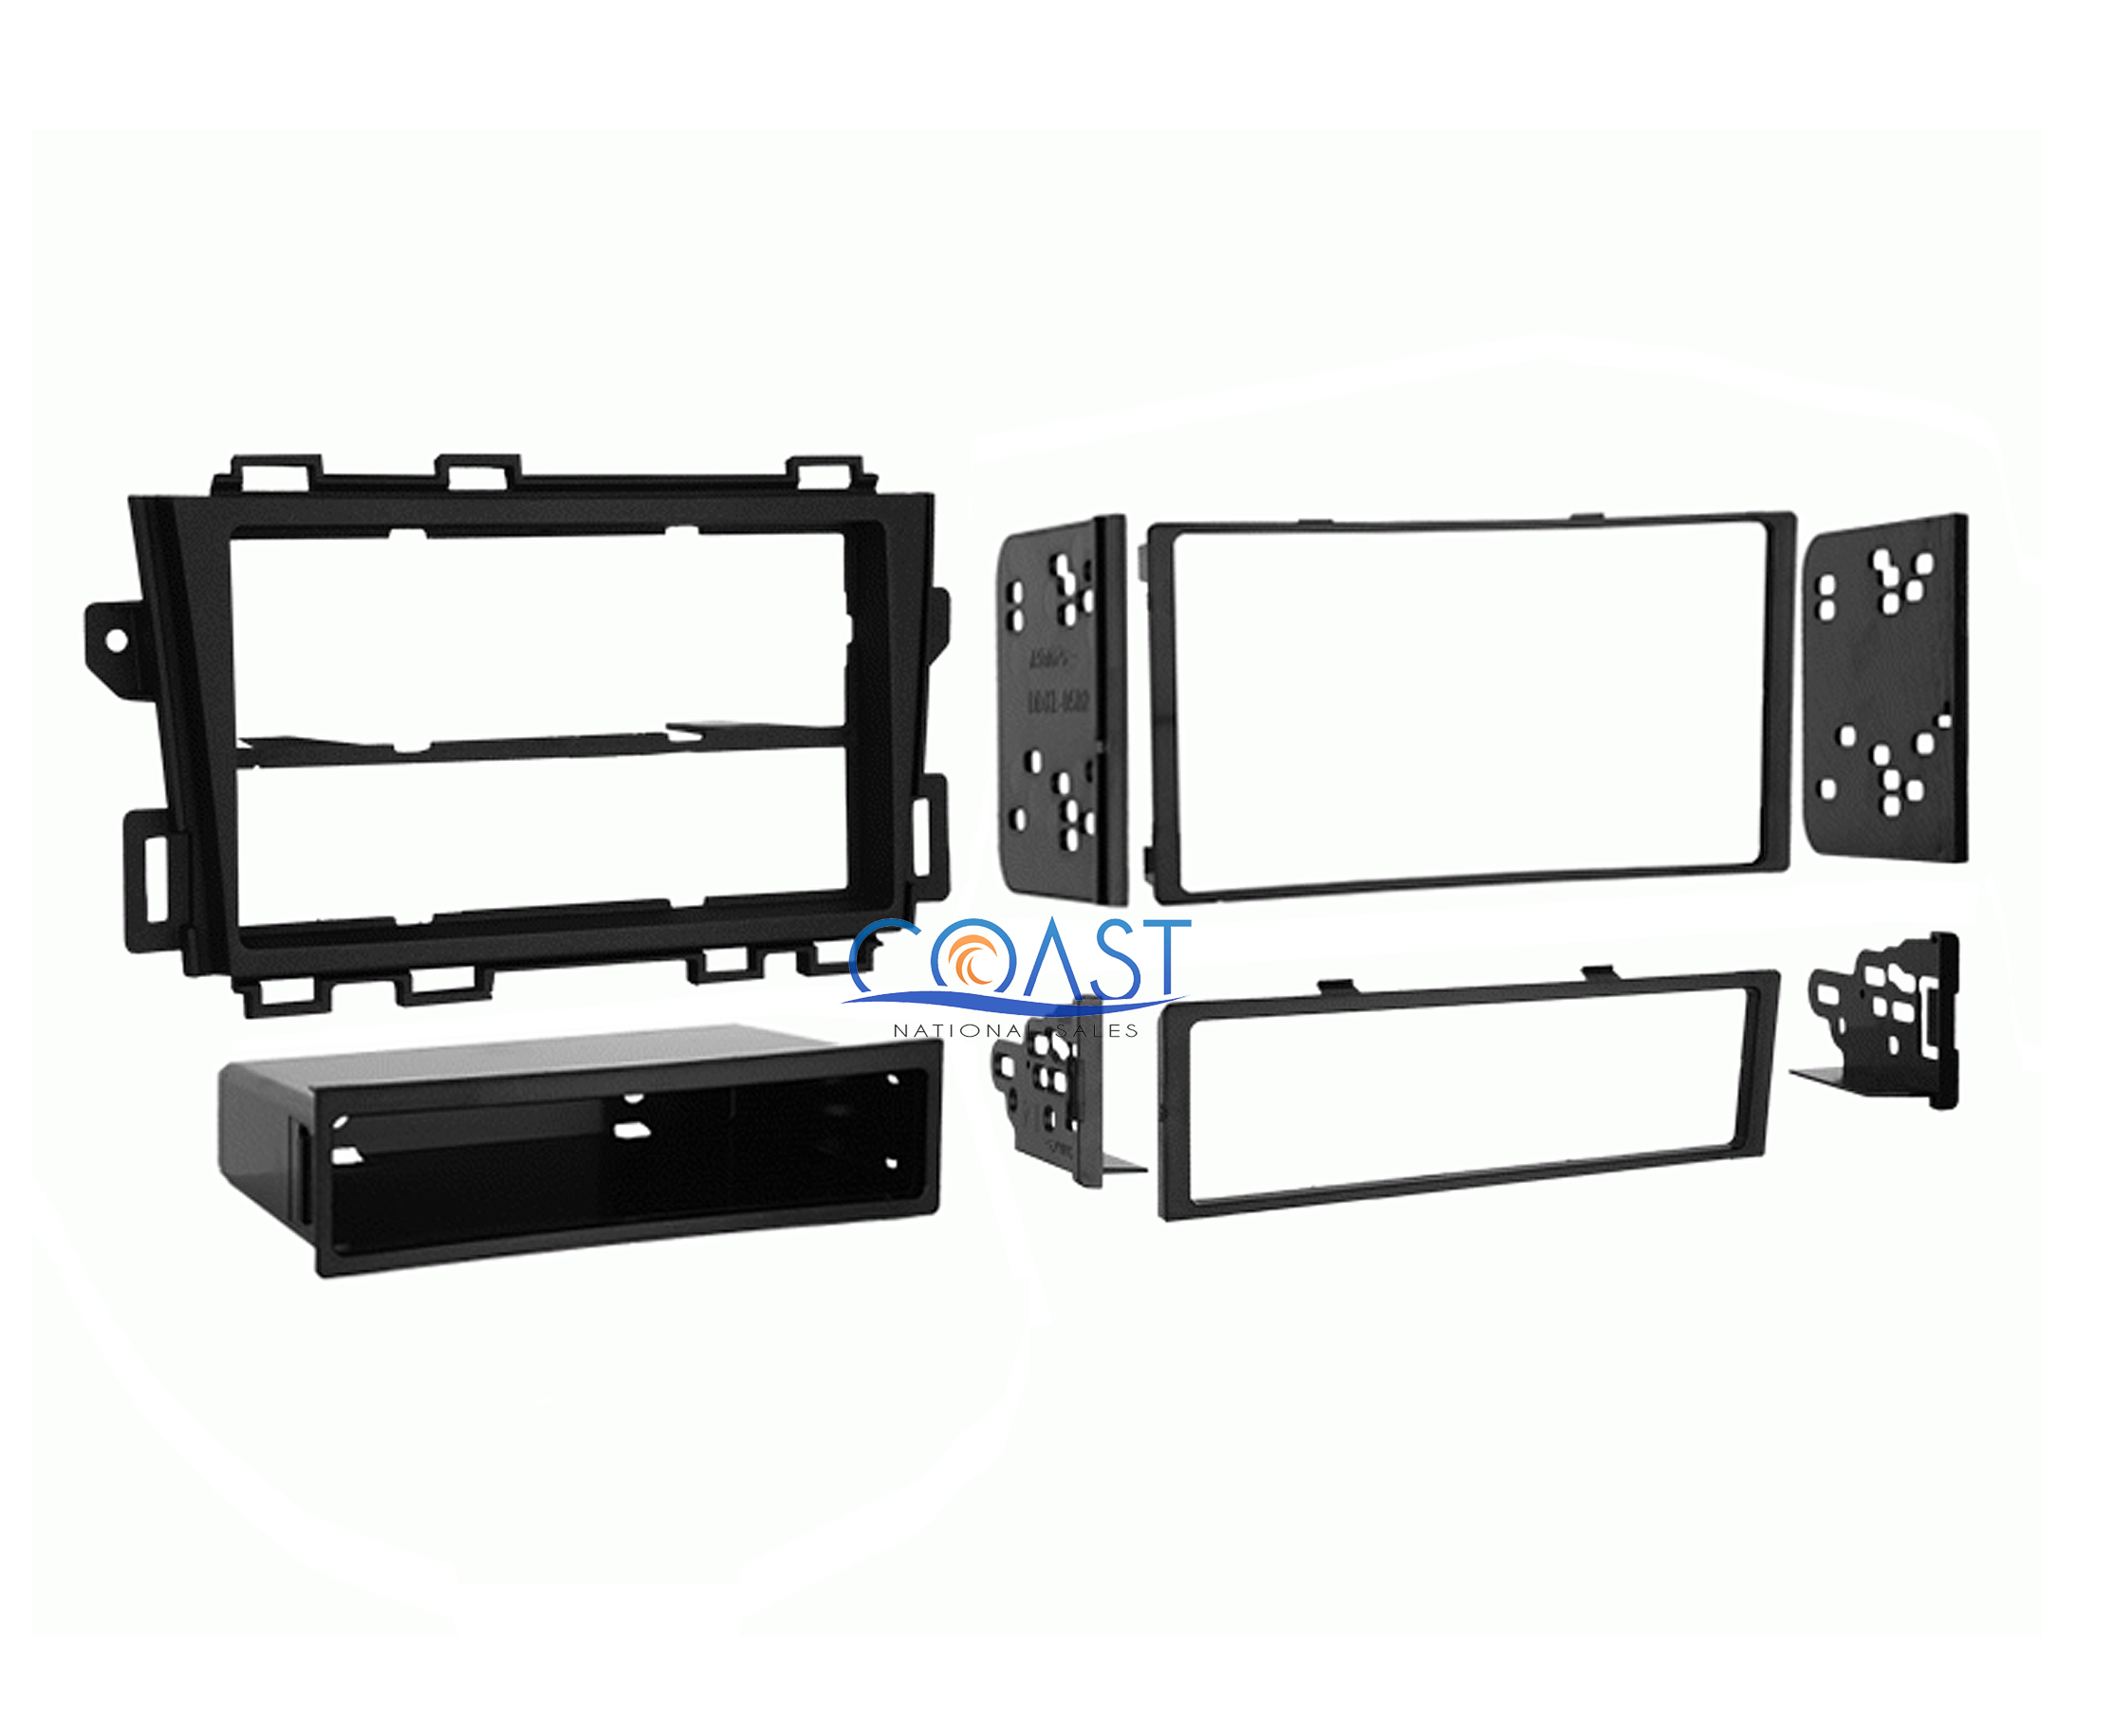 Metra 99 7426 Single Double DIN Install Dash Kit for 2009 Nissan Murano